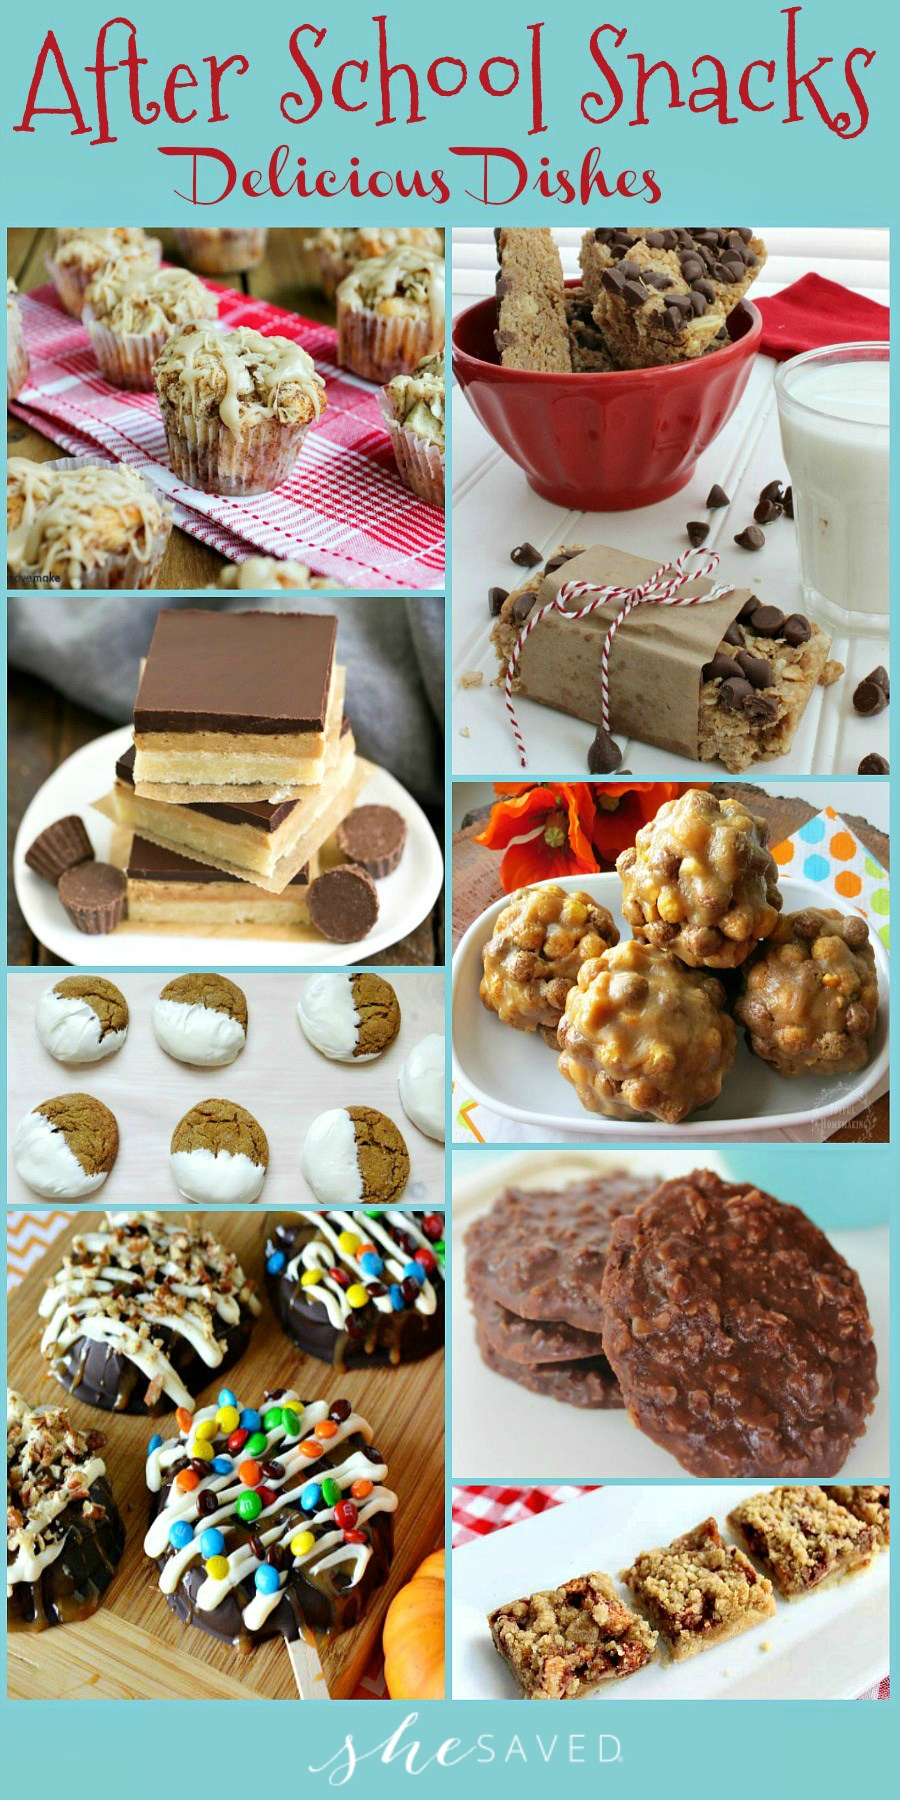 Save this awesome round up of after school snacks to reward your kiddos after school! Mom win!